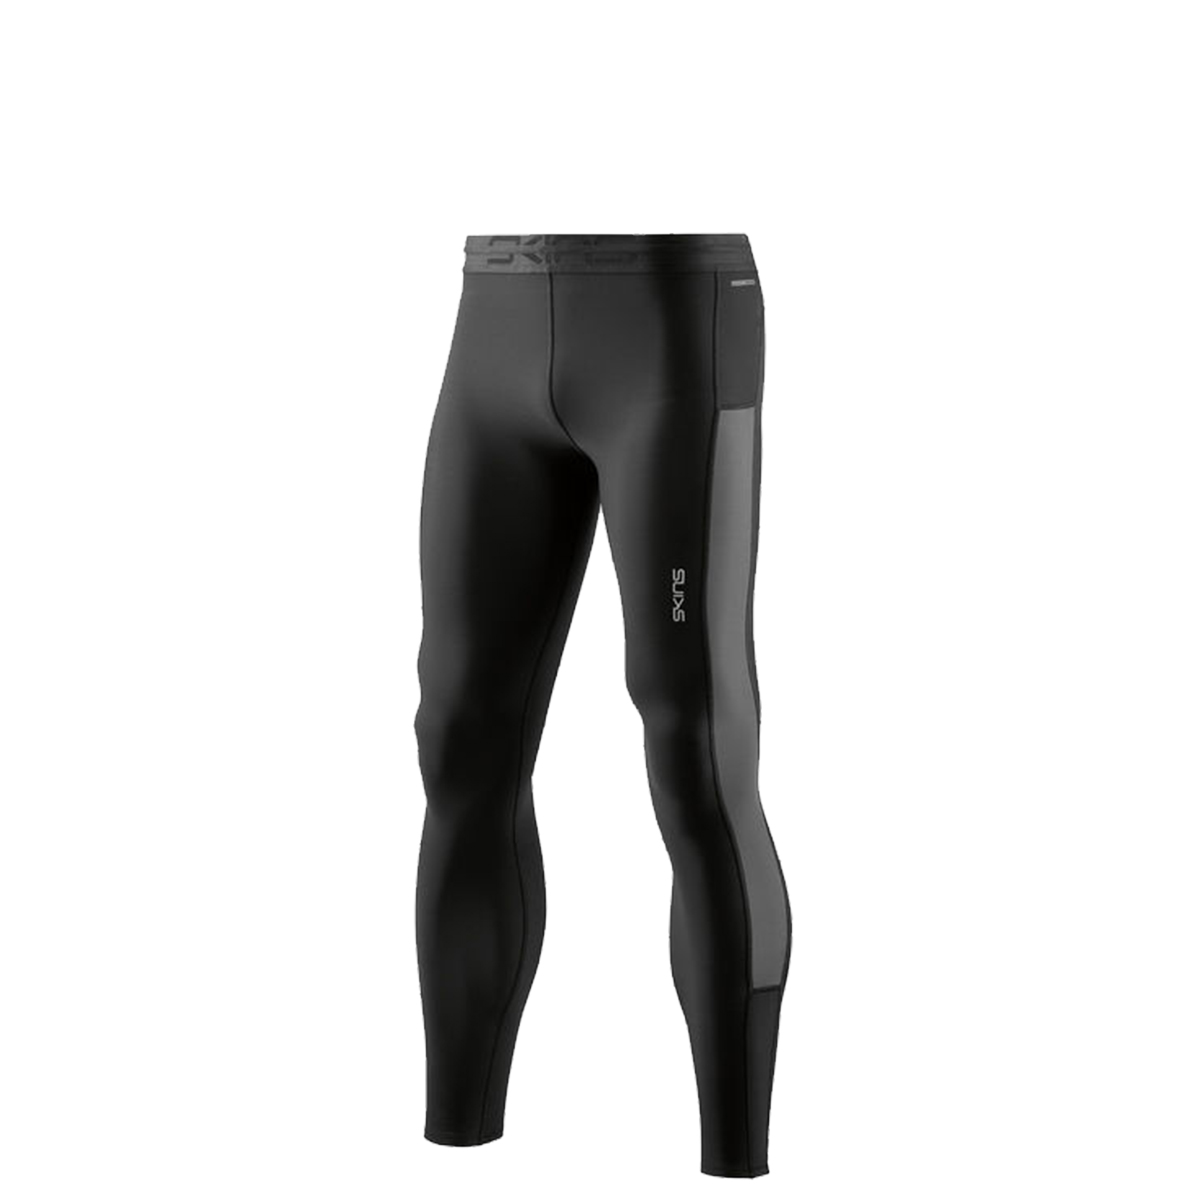 32d458d7fcc27 [compression wear SKINS to draw the athletic capability of the person  effectively]